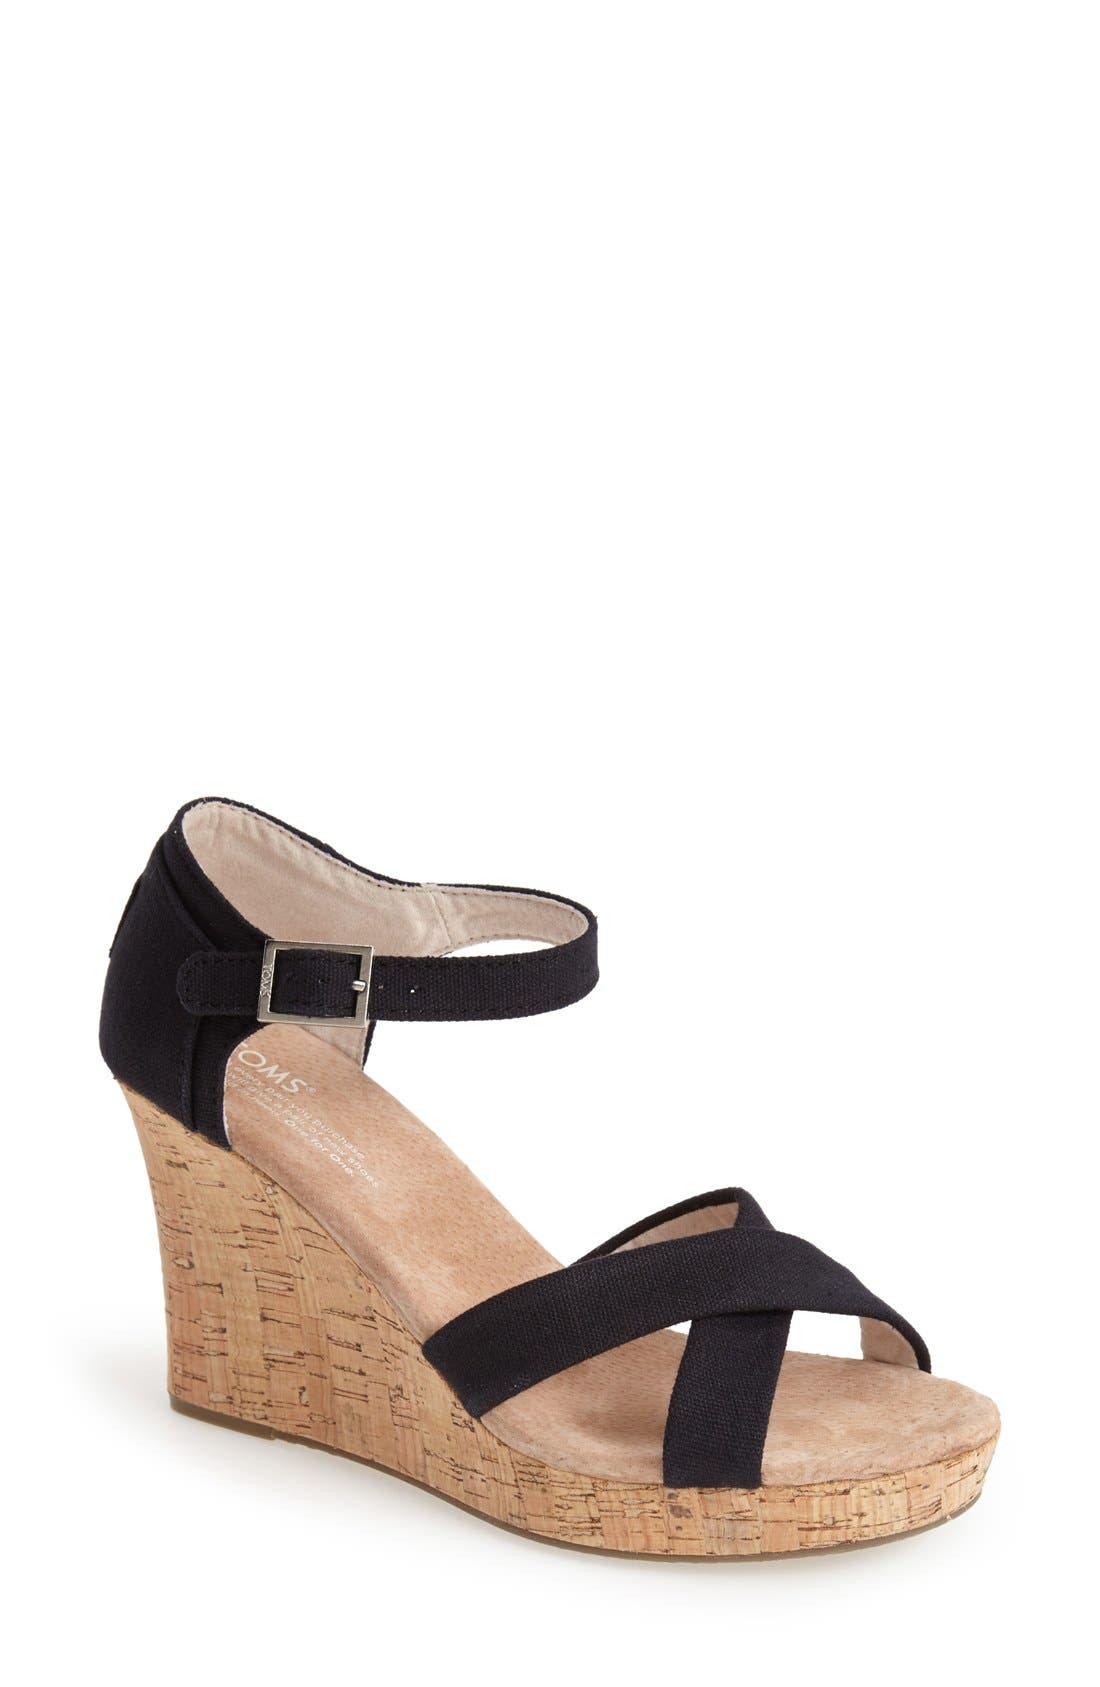 Main Image - TOMS Canvas Ankle Strap Wedge Sandal (Women)